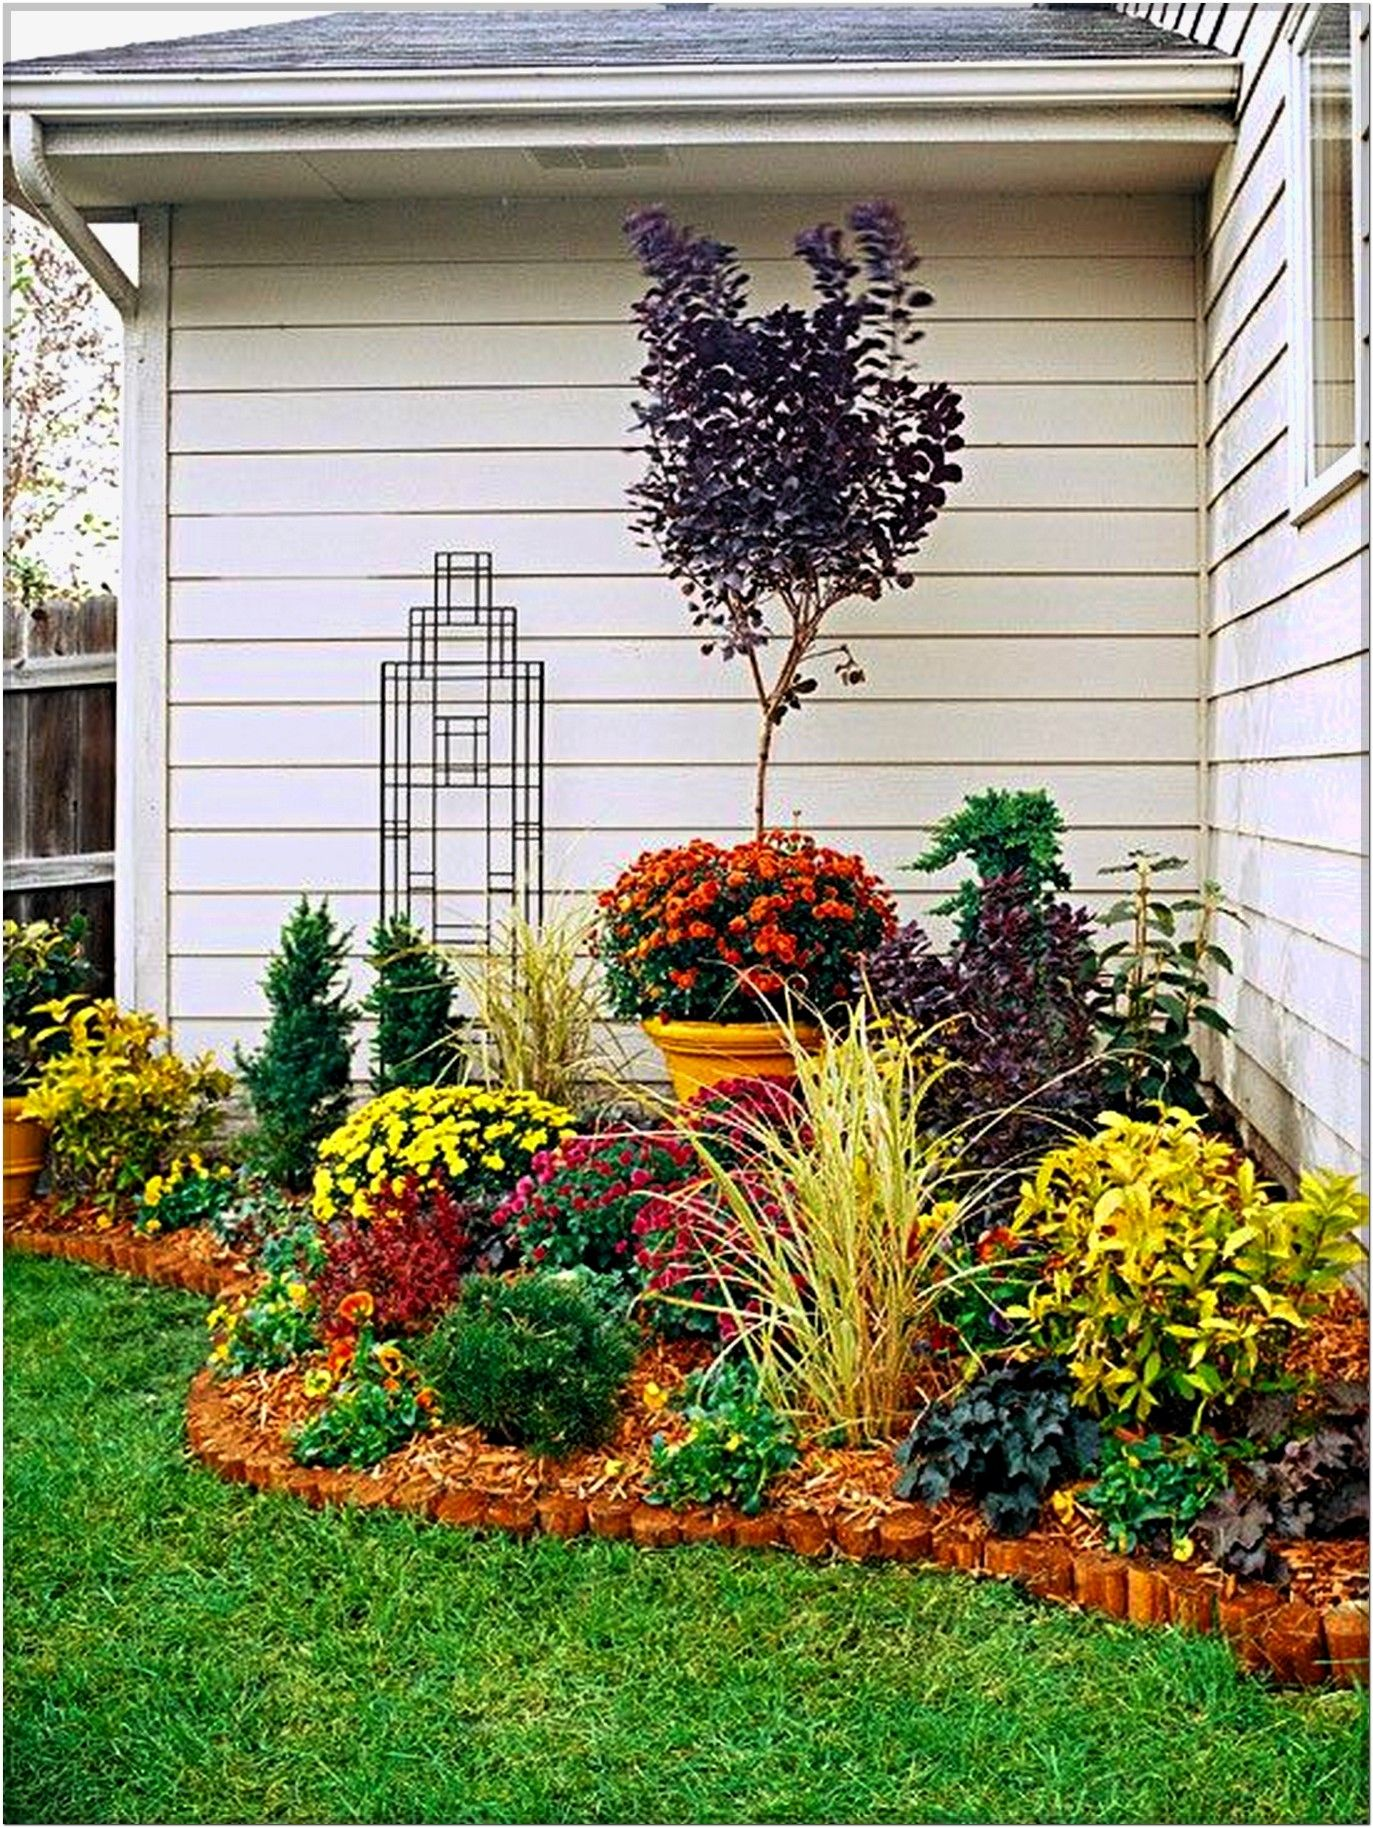 Small Corner Garden Design DIY Do It Yourself On A Budget In Alongside Backyard Or Home Best Exterior Decorating Flower